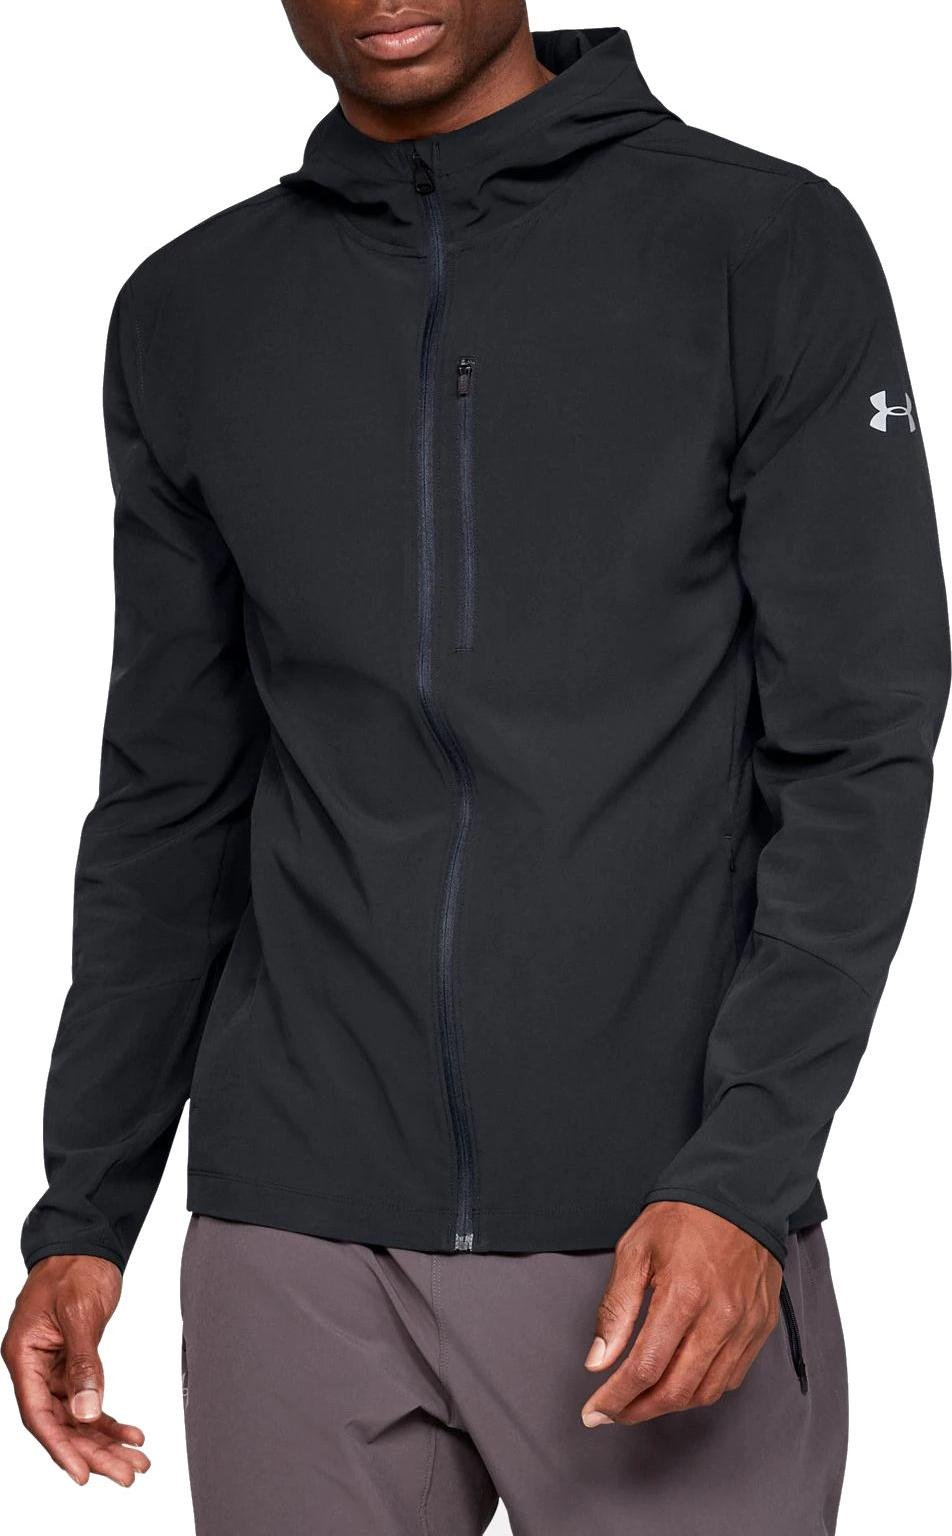 Motel Eslovenia Ya  Hooded jacket Under Armour OUTRUN THE STORM JACKET v2 - Top4Running.com